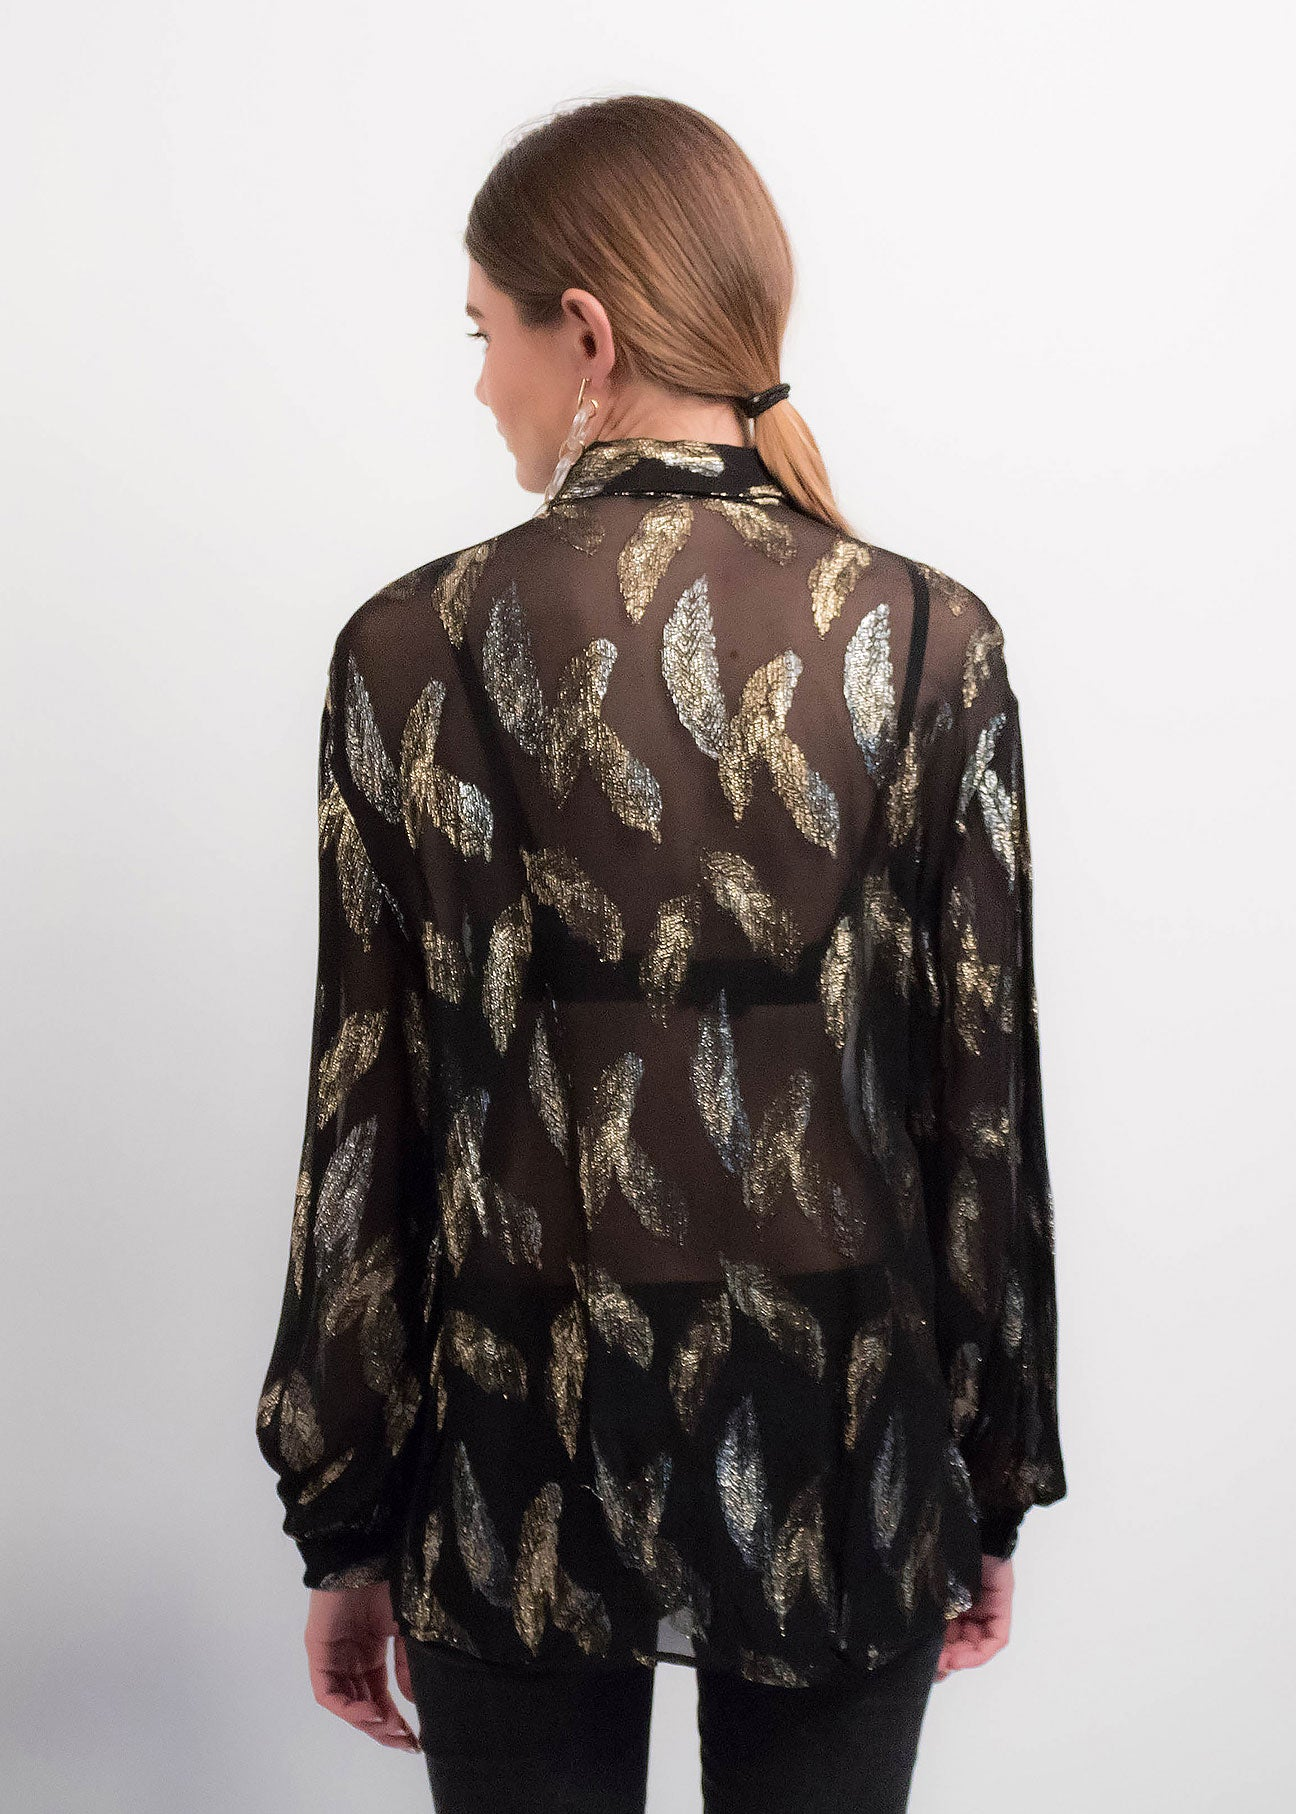 80s Sheer Metallic Blouse